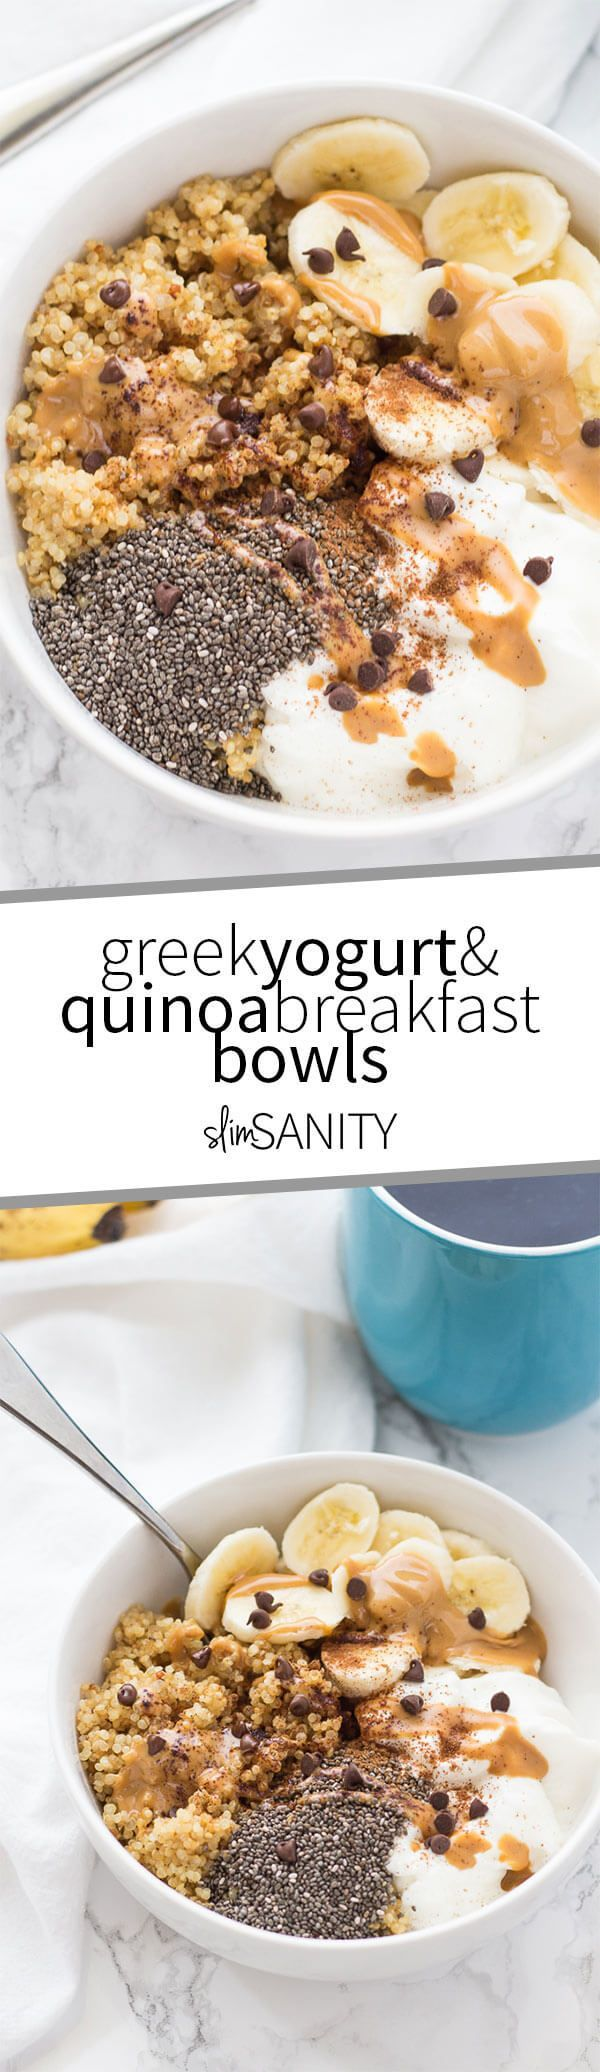 Greek yogurt and quinoa breakfast bowls are a simple and delicious way to eat a healthy breakfast that is high in protein! | slimsanity.com